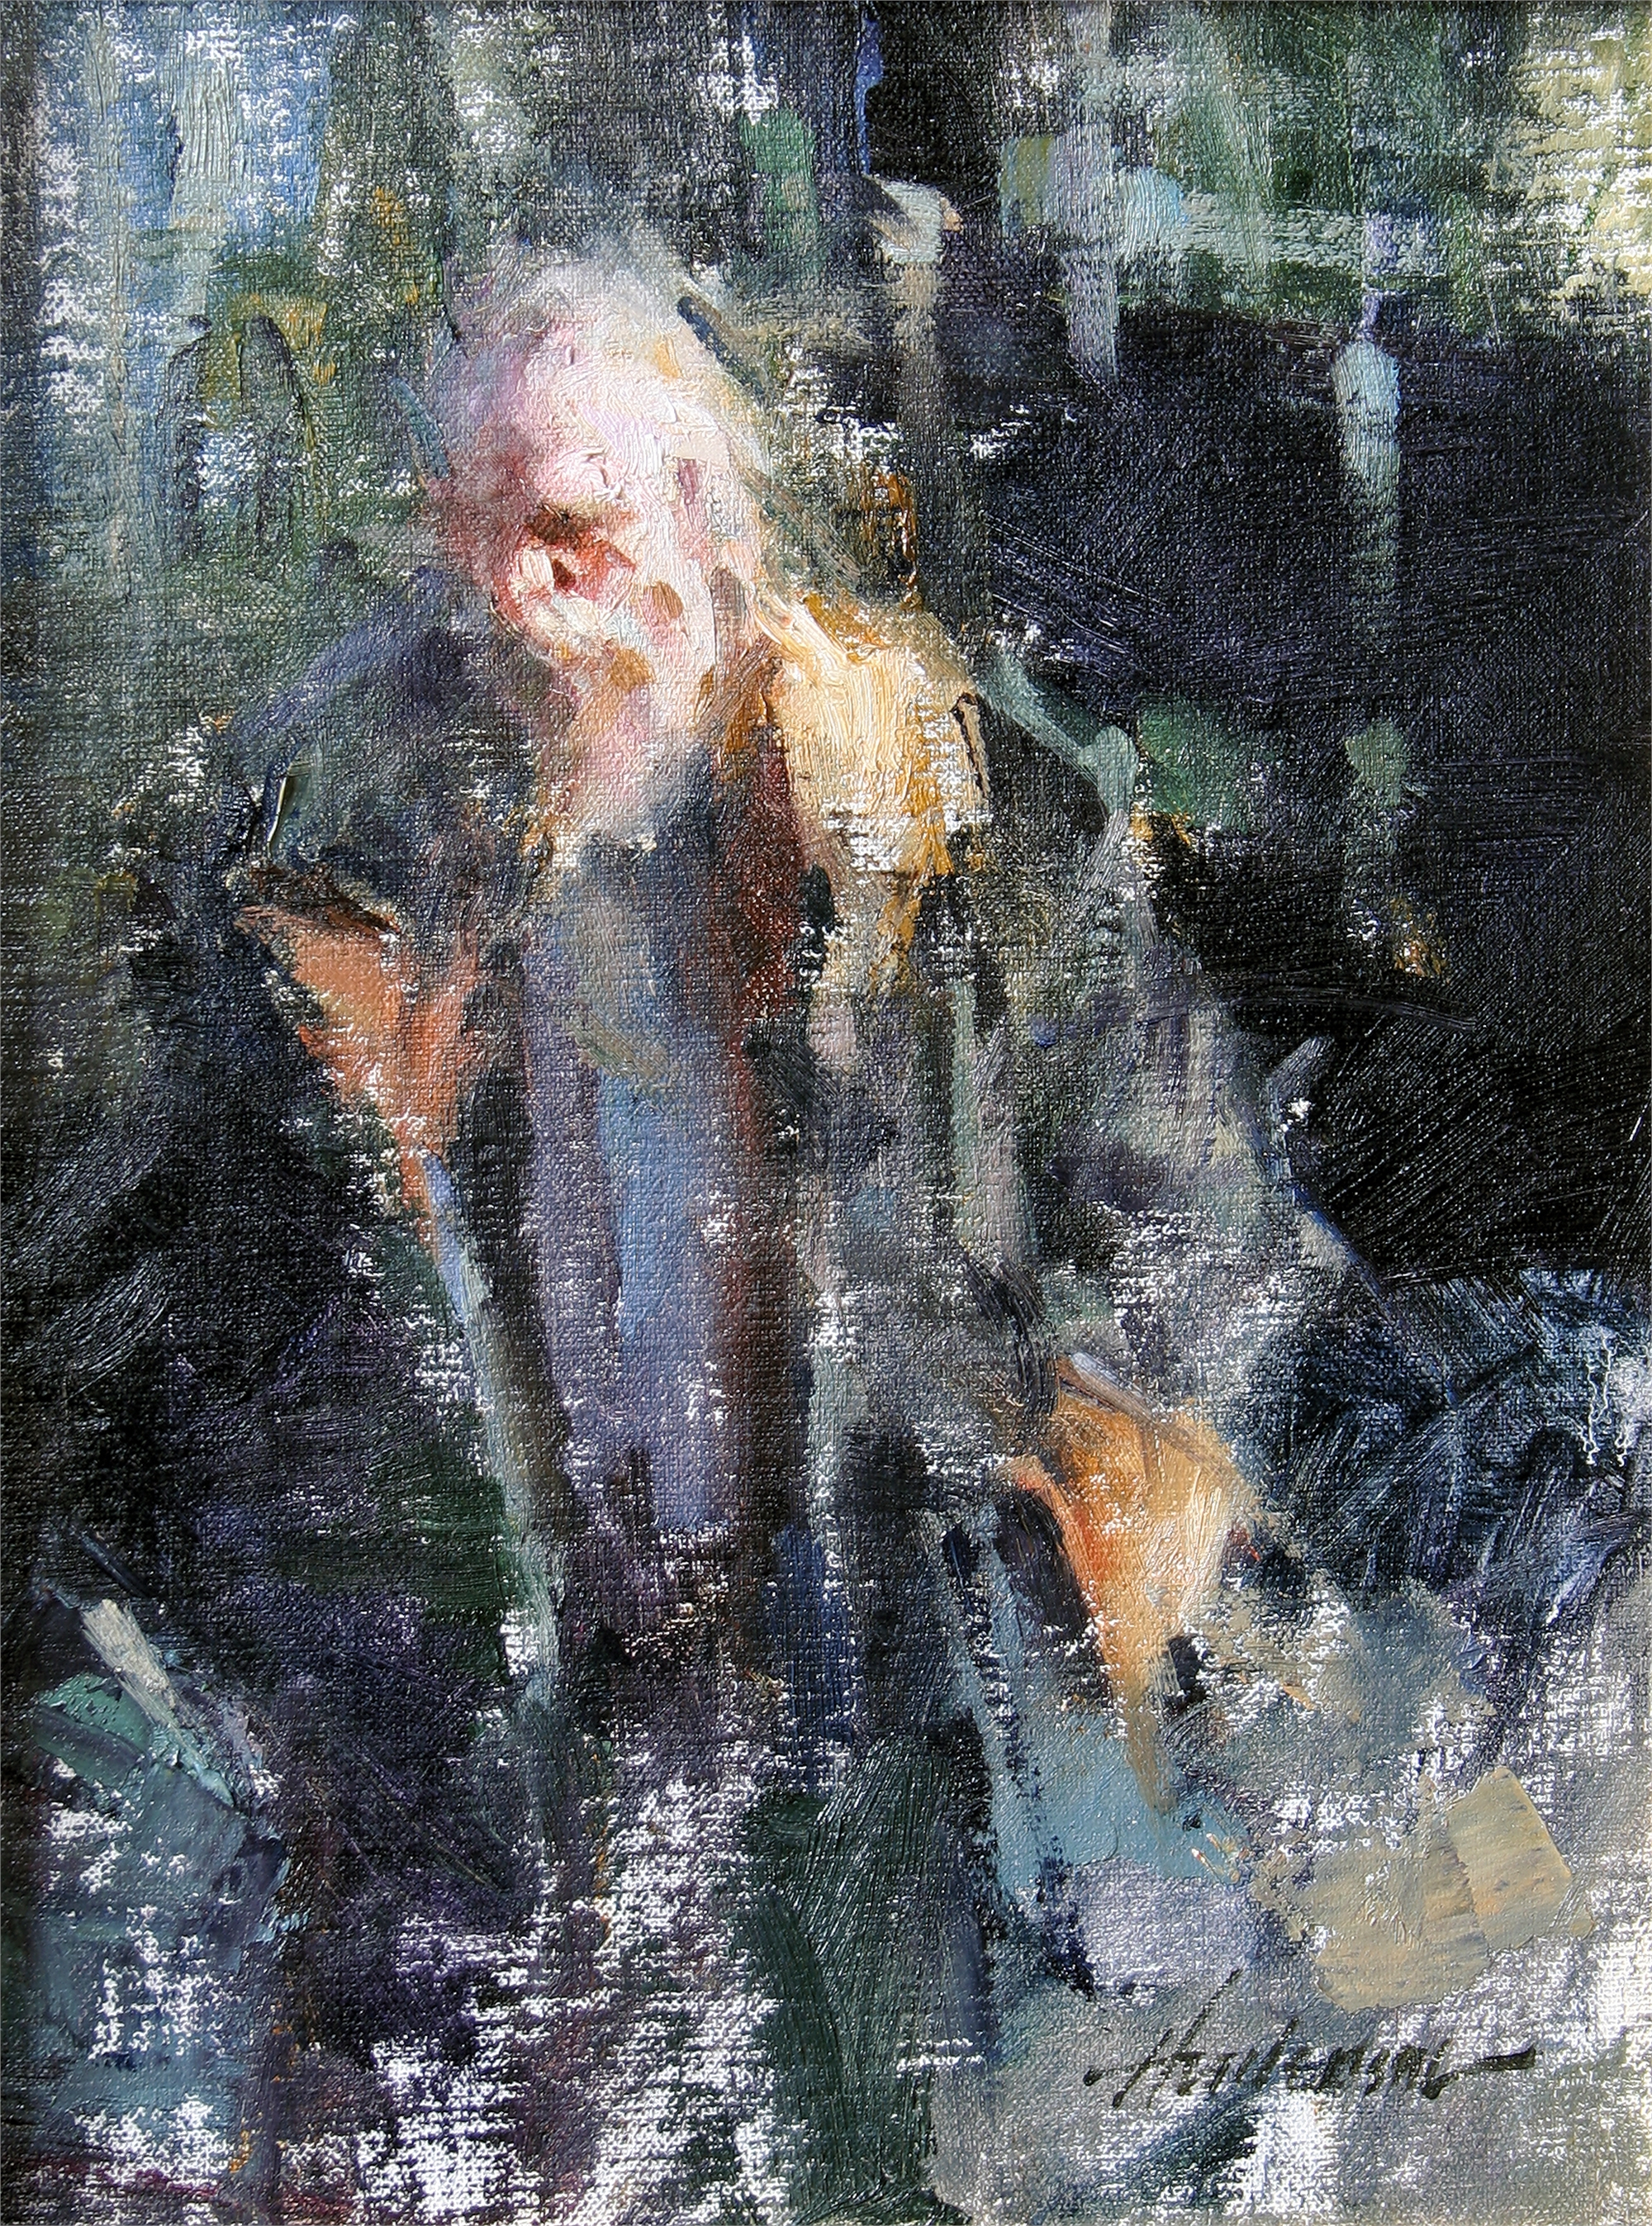 Man in Fur Coat by Carolyn Anderson